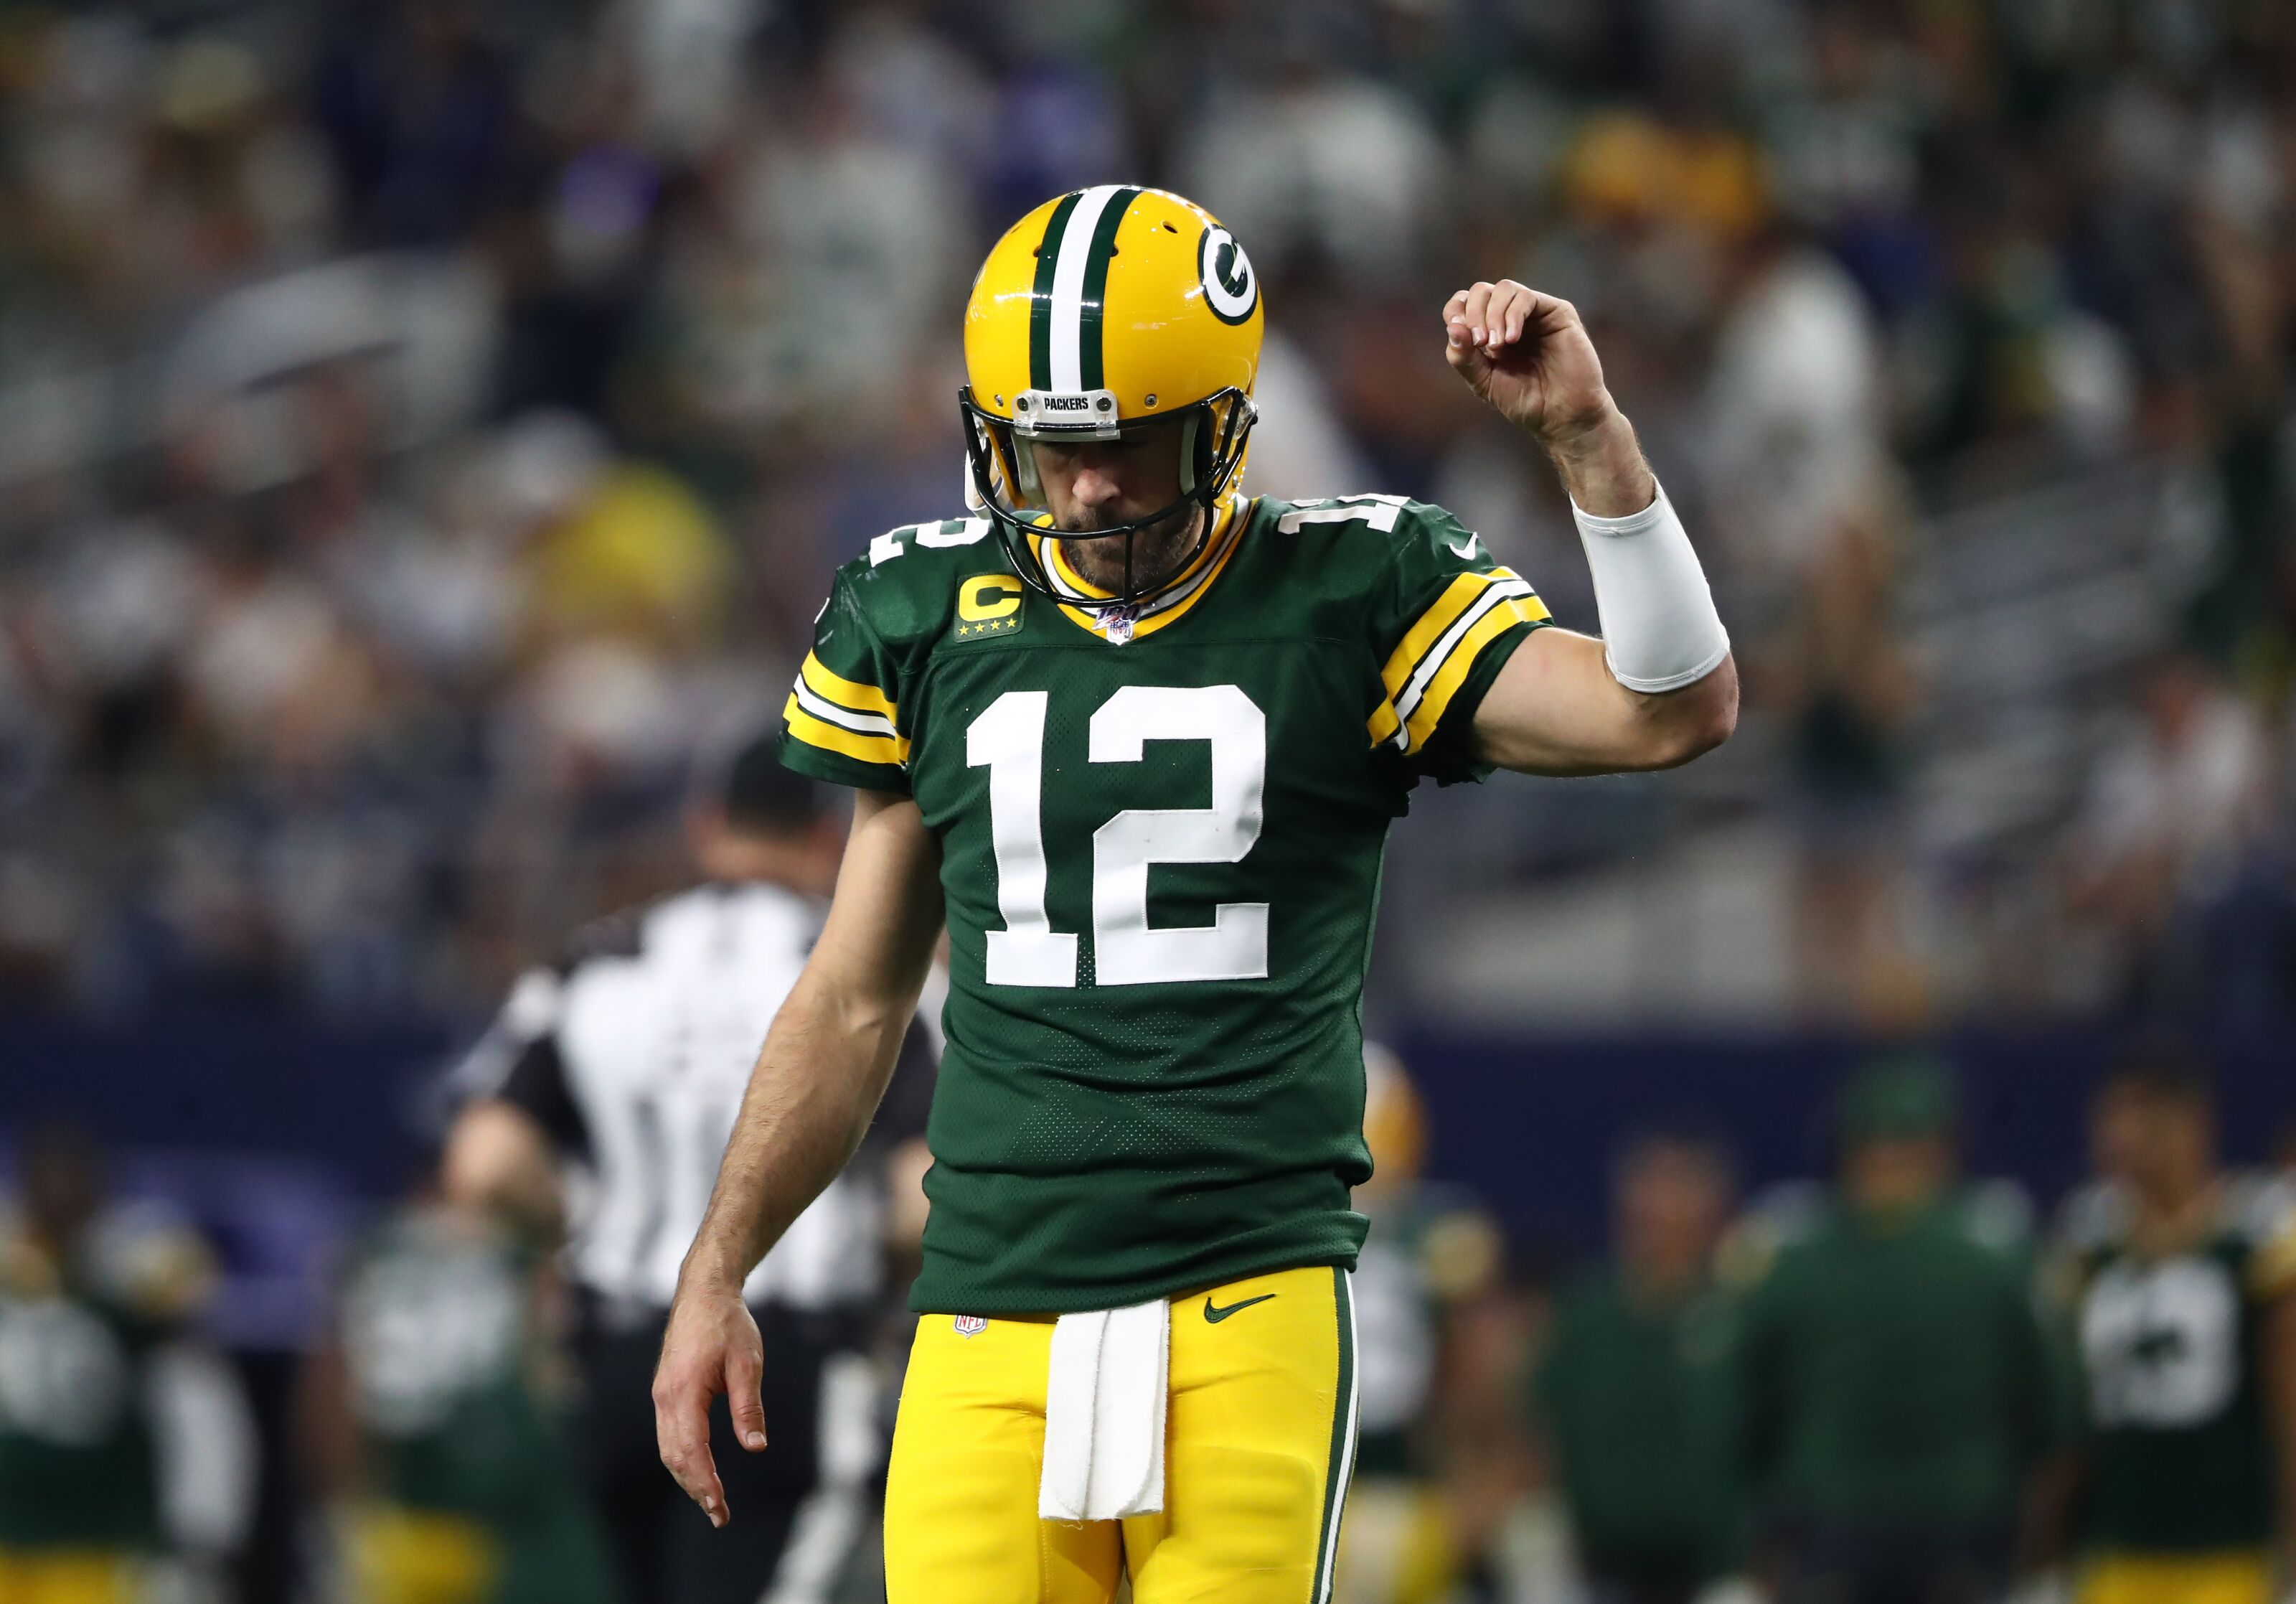 Green Bay Packers: Aaron Rodgers quietly having great season